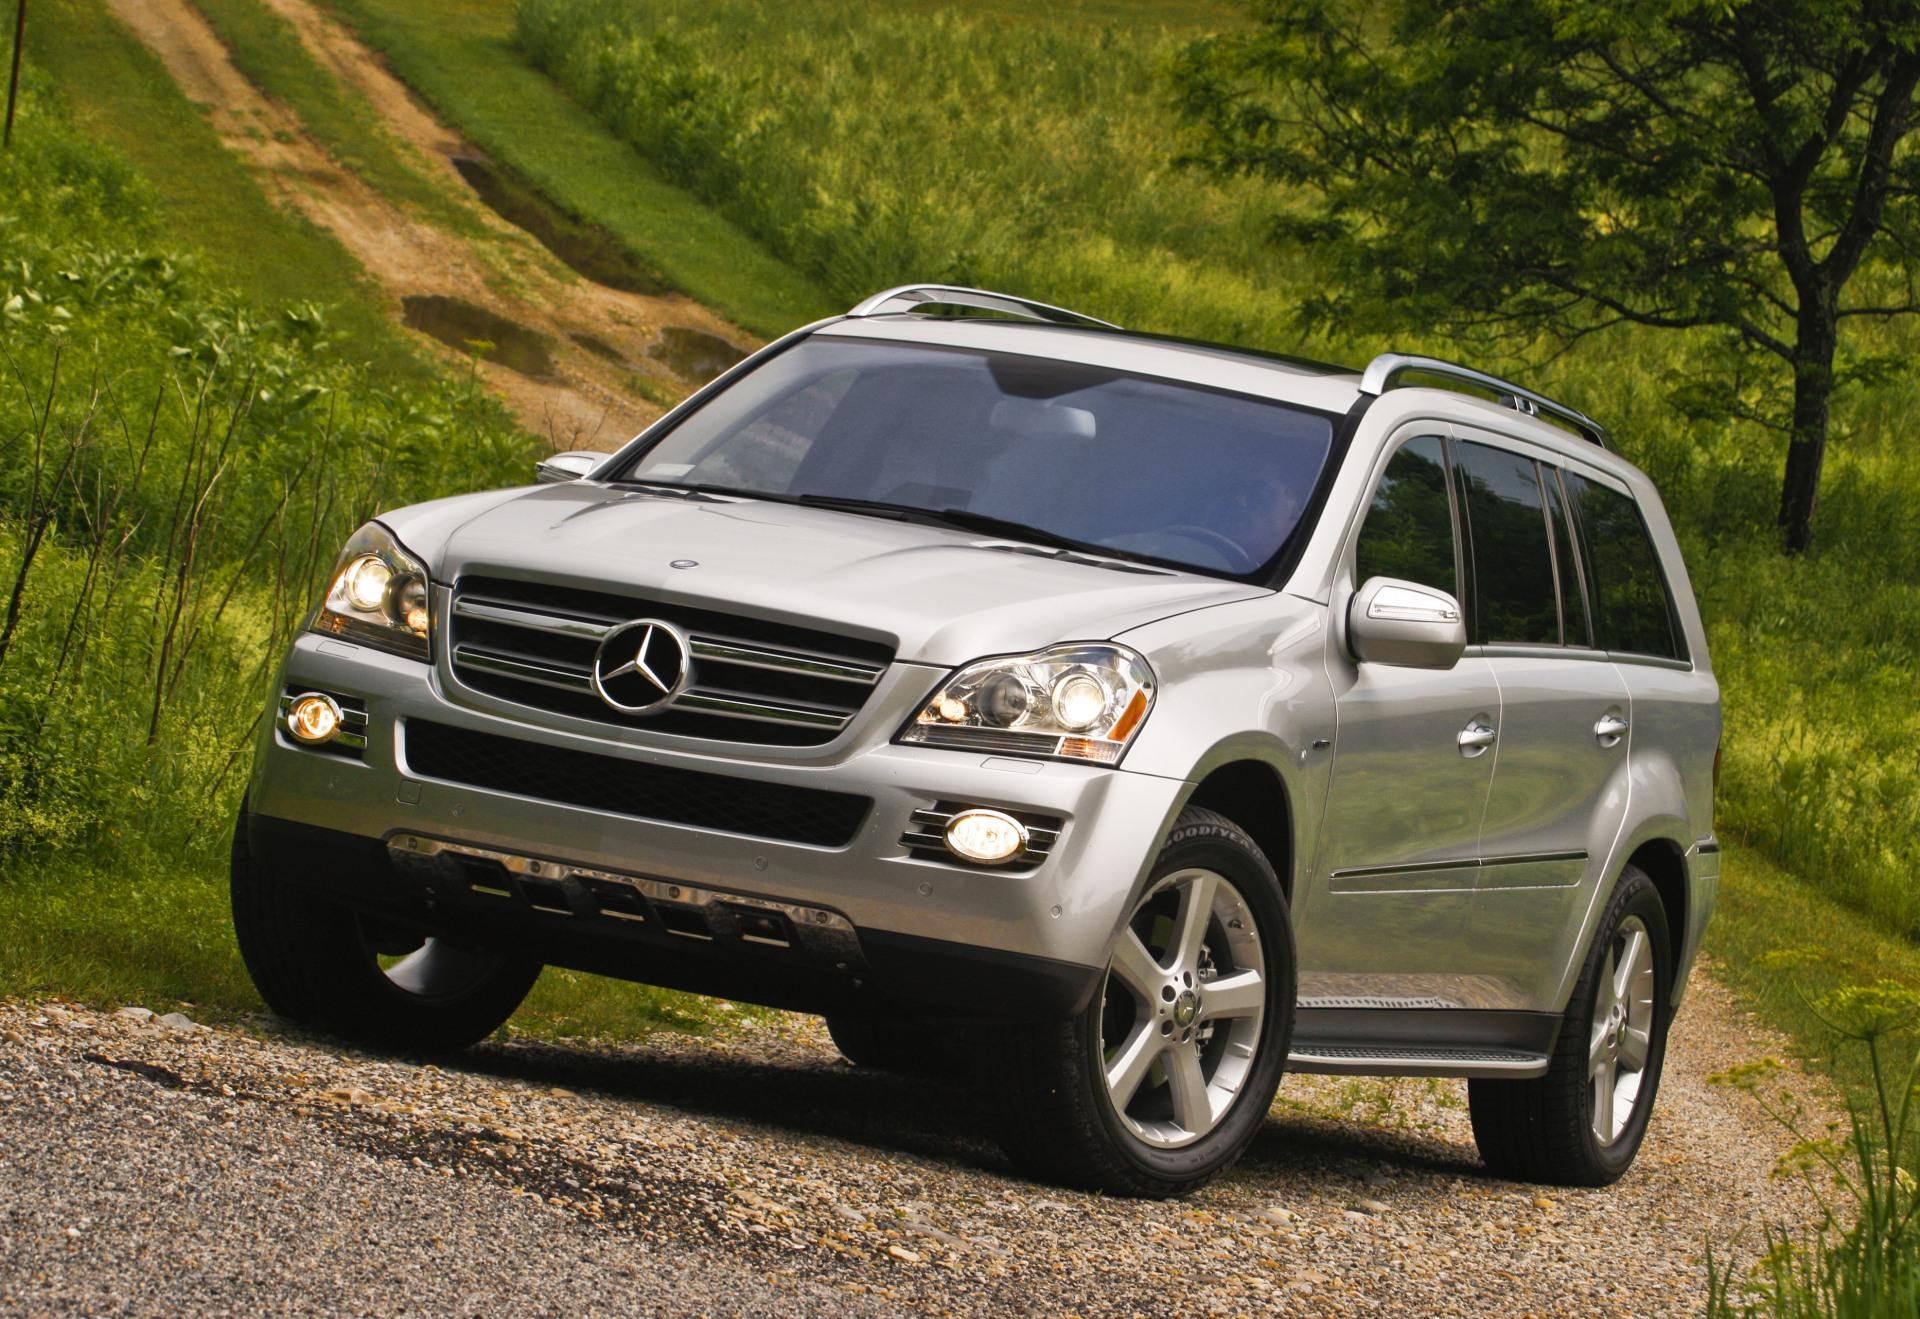 2009 mercedes benz gl class news and information for What country makes mercedes benz cars